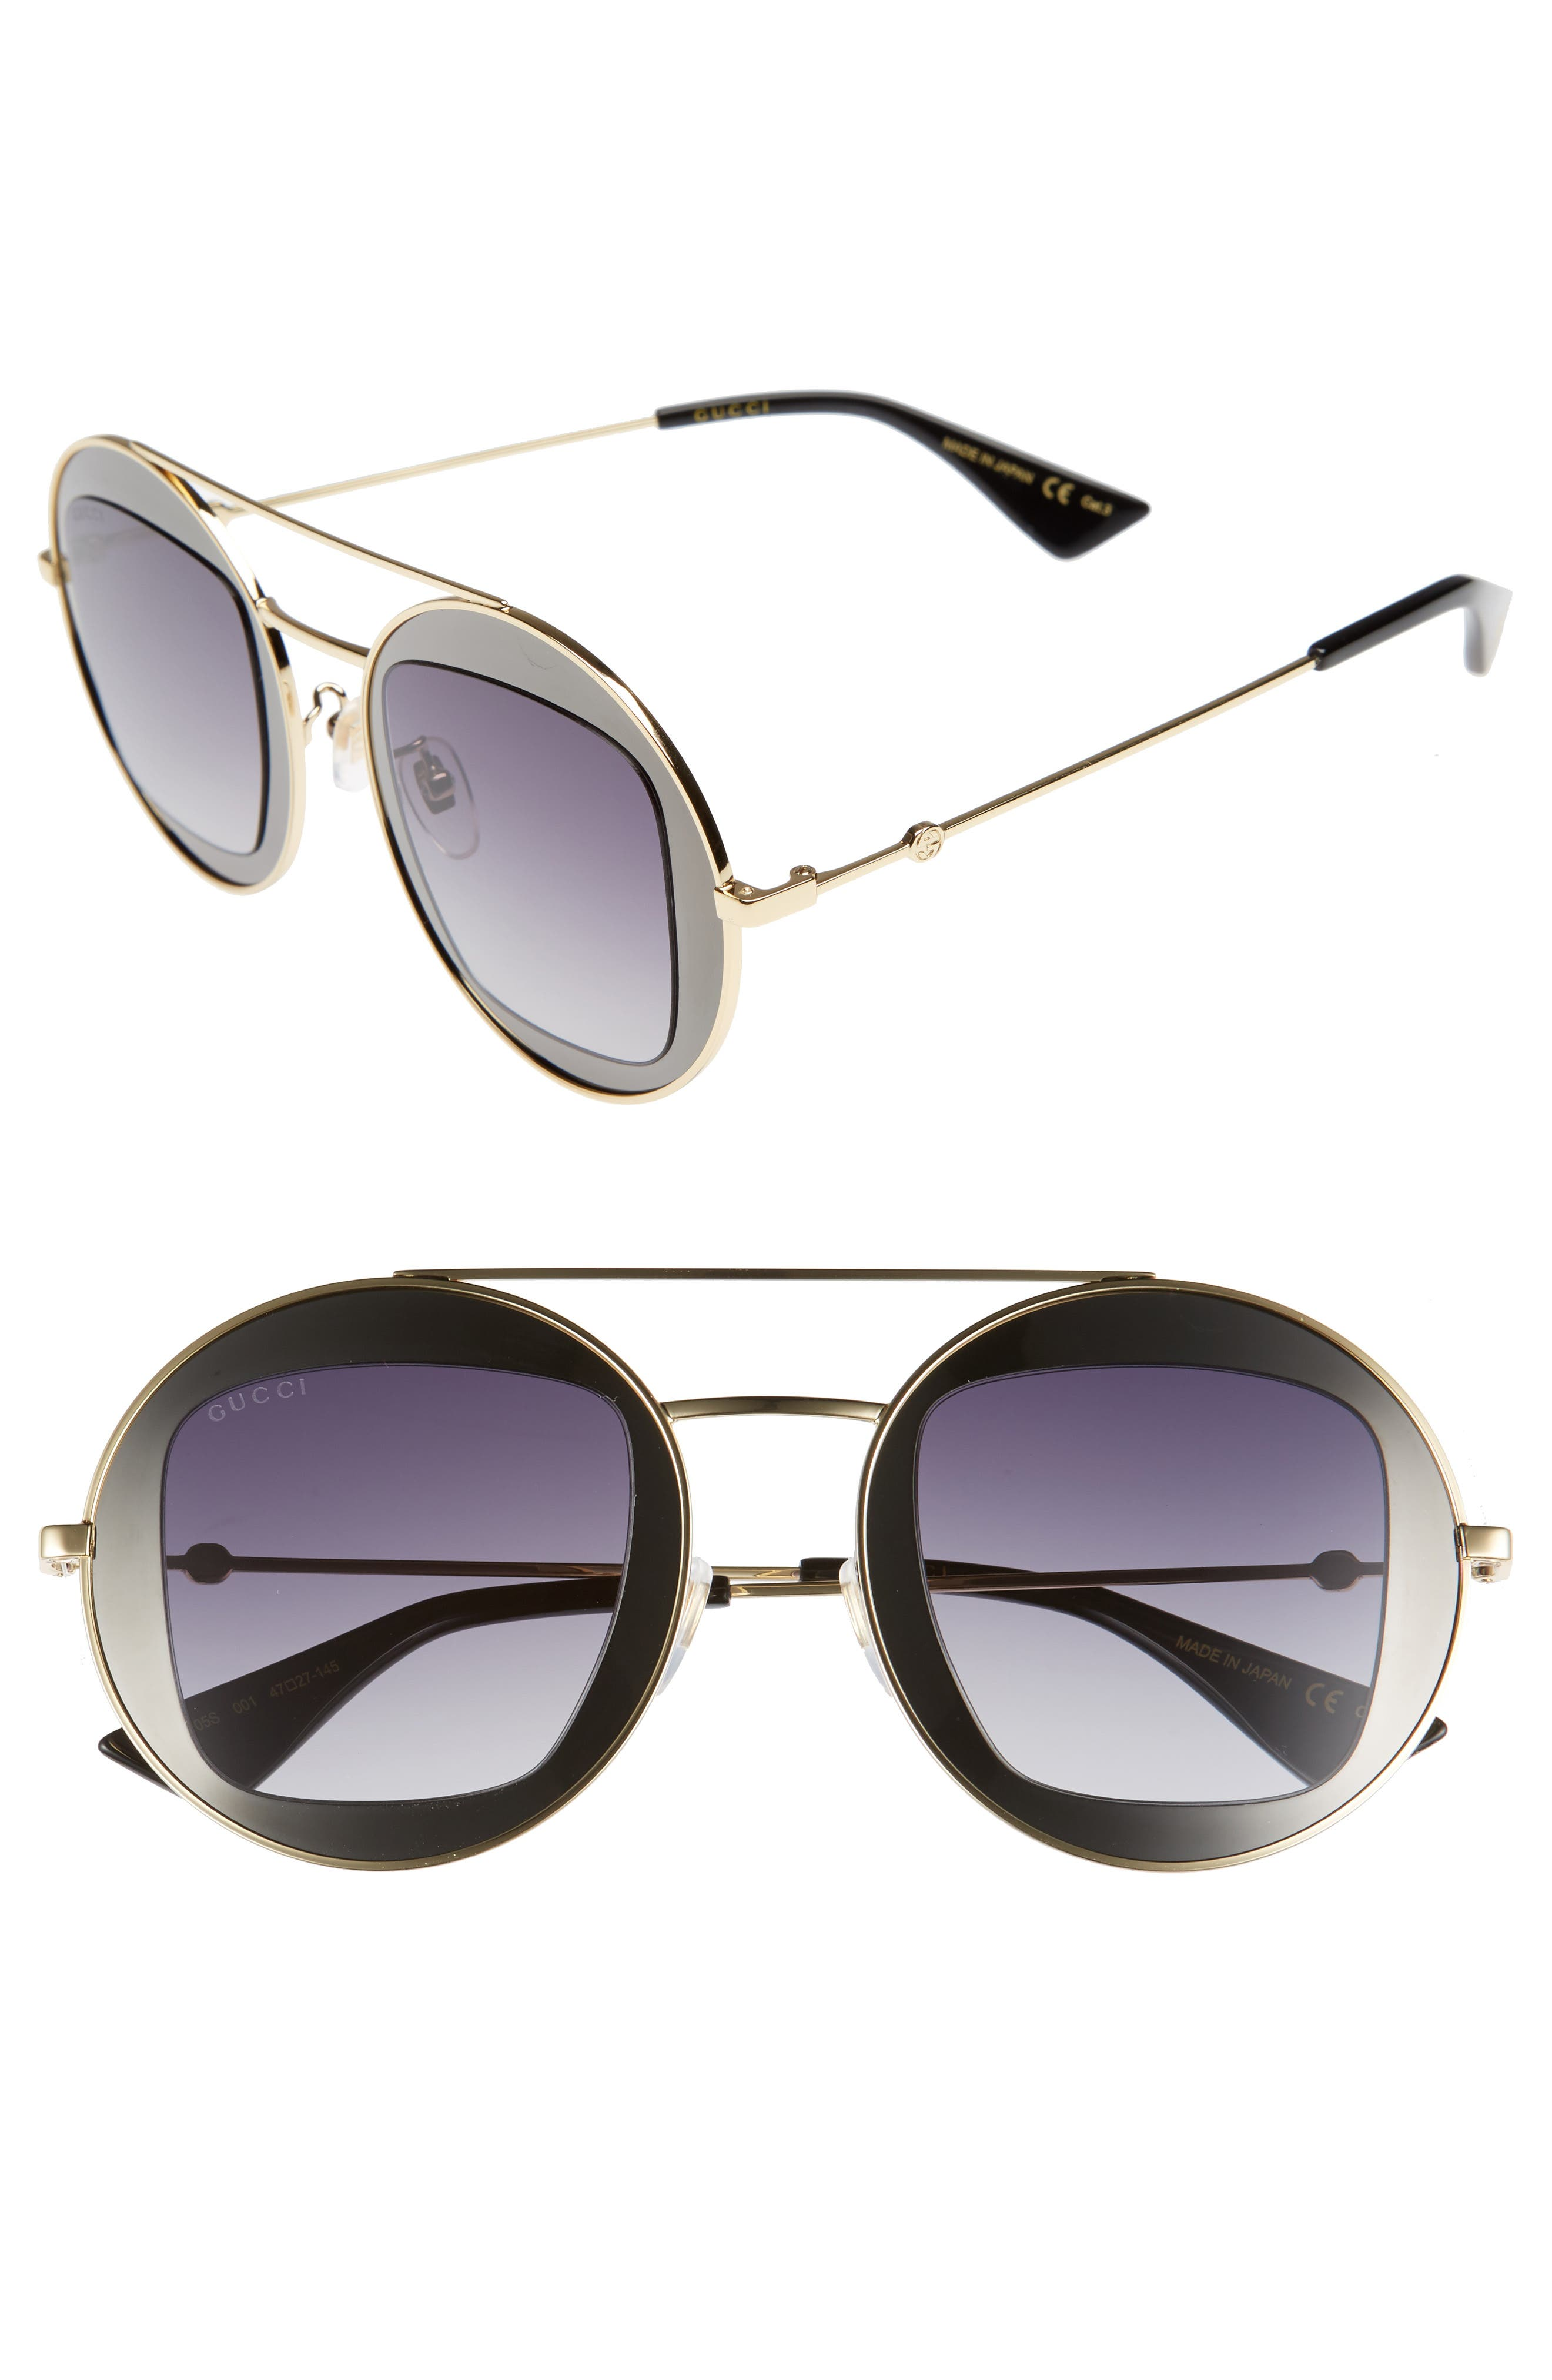 47mm Round Sunglasses,                         Main,                         color, Matte Gold/ Grey